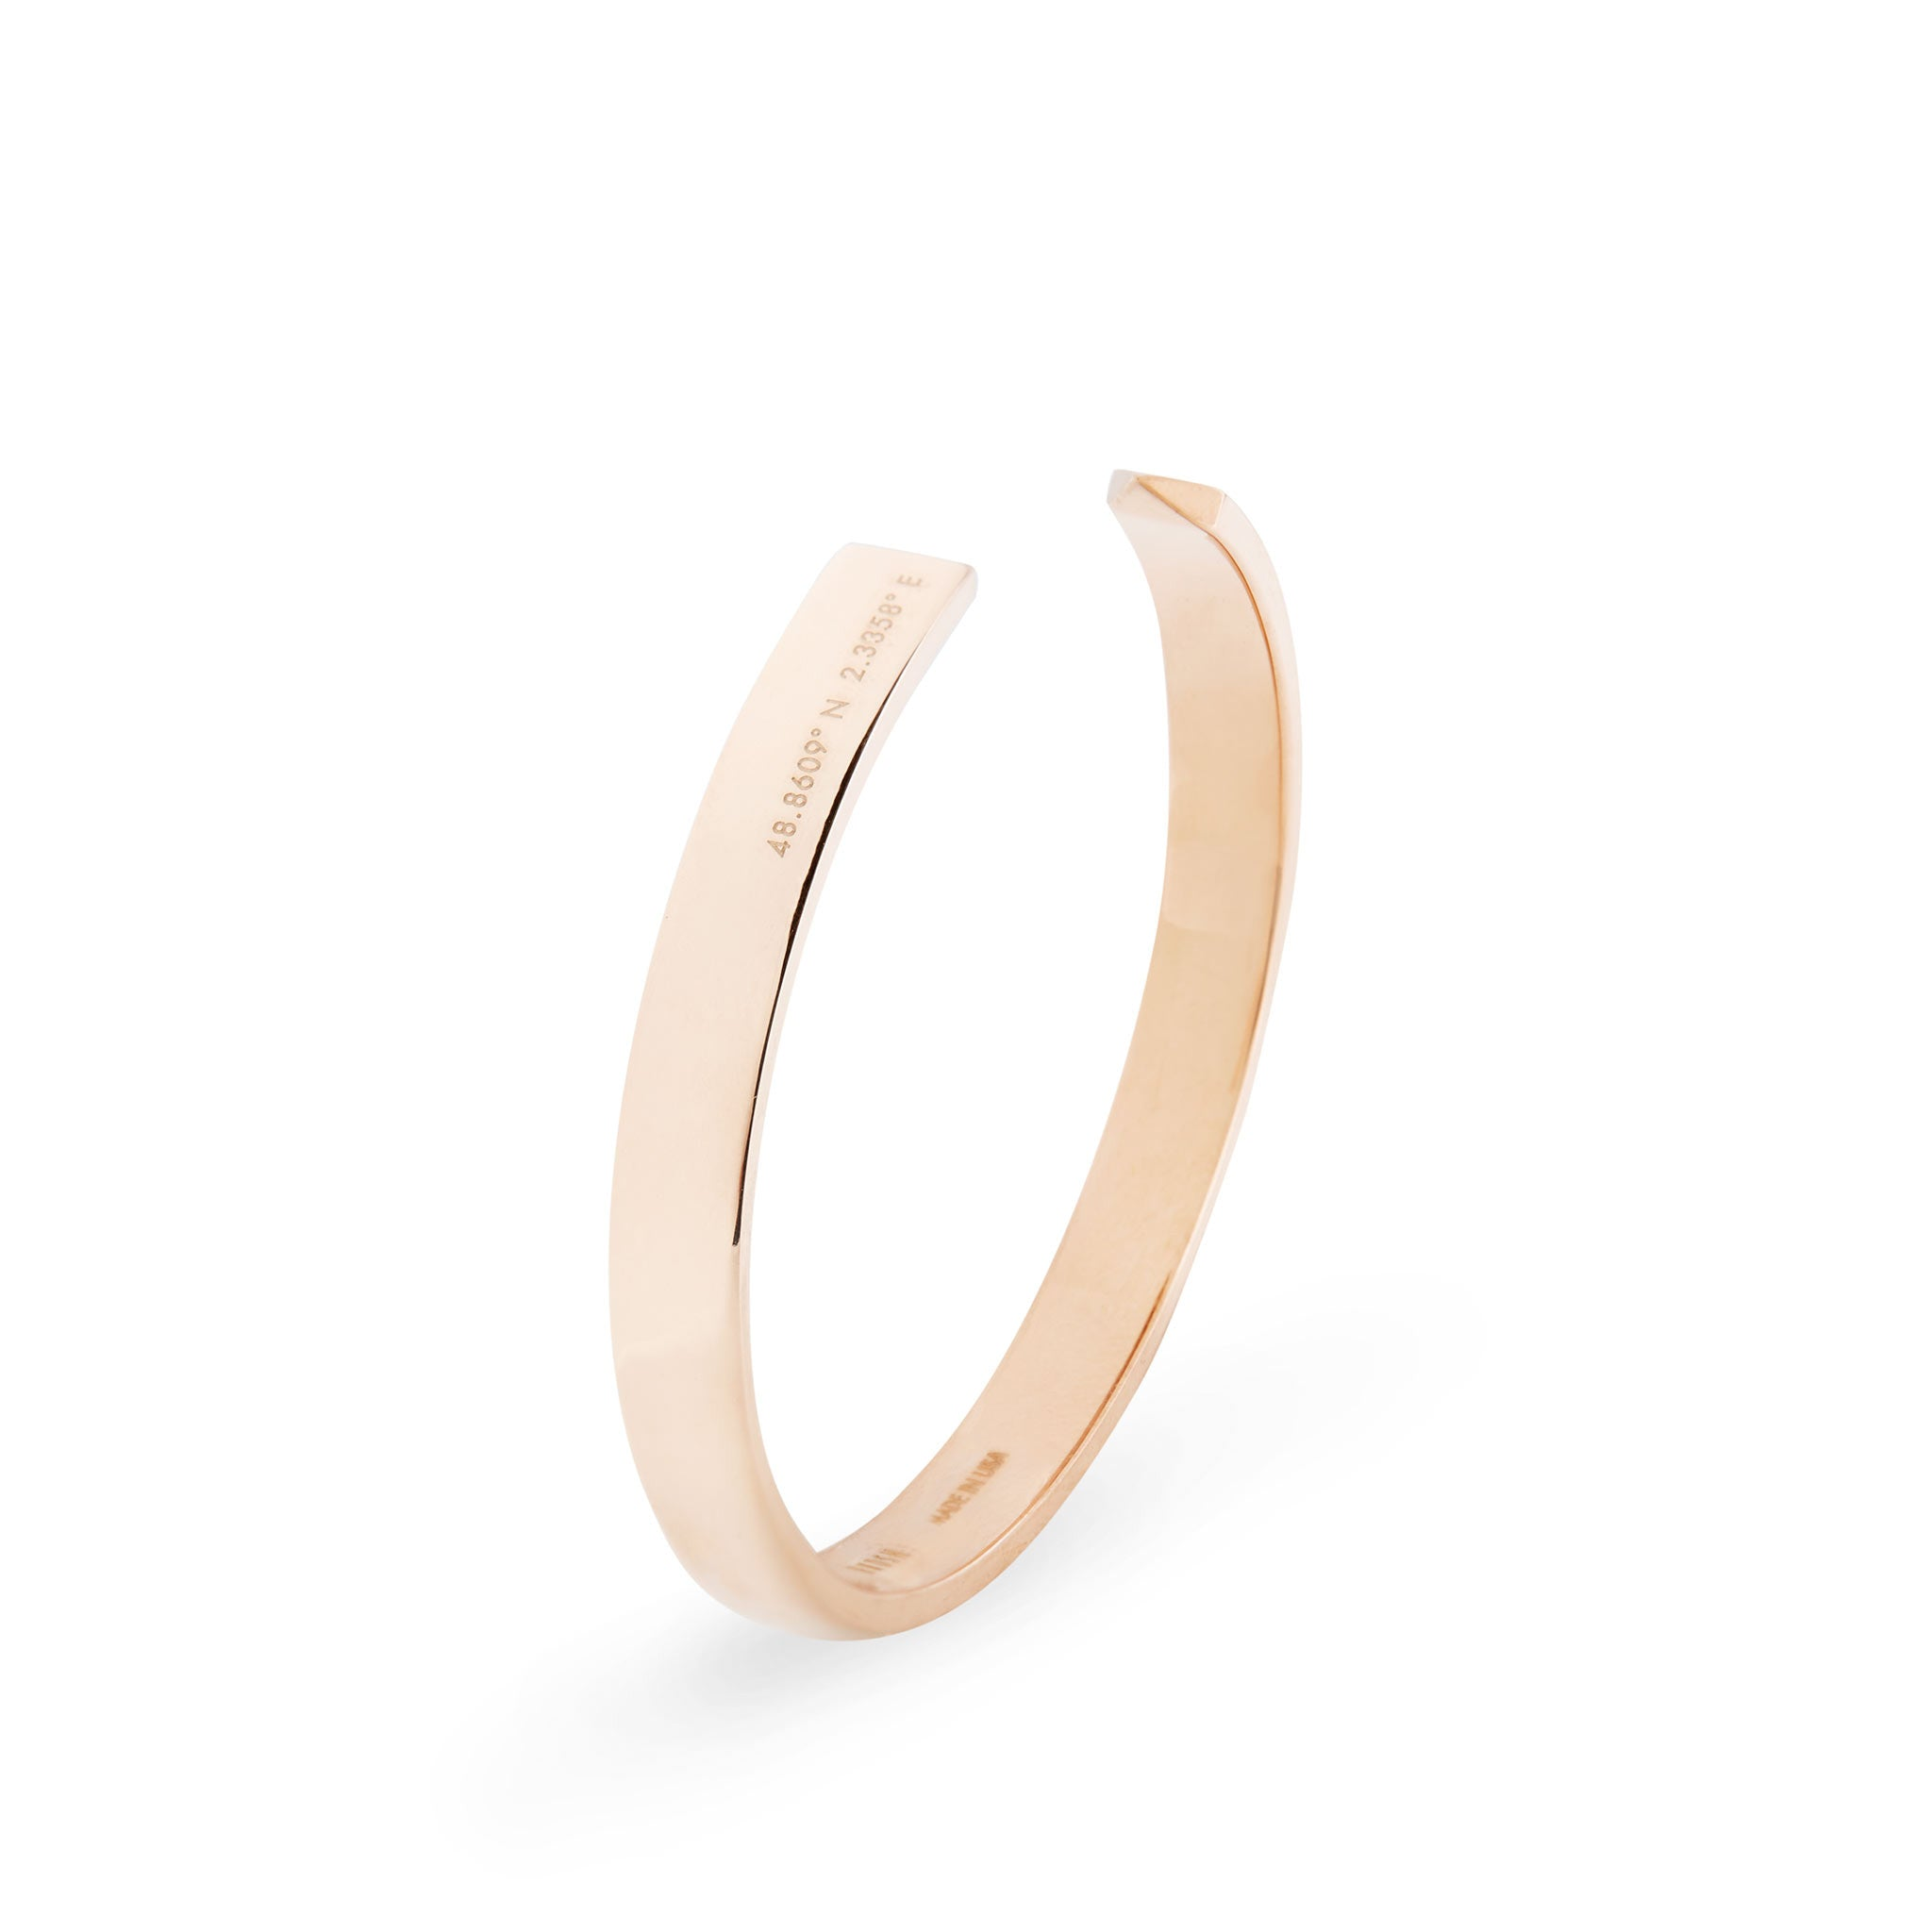 Paris - 14K Rose Gold